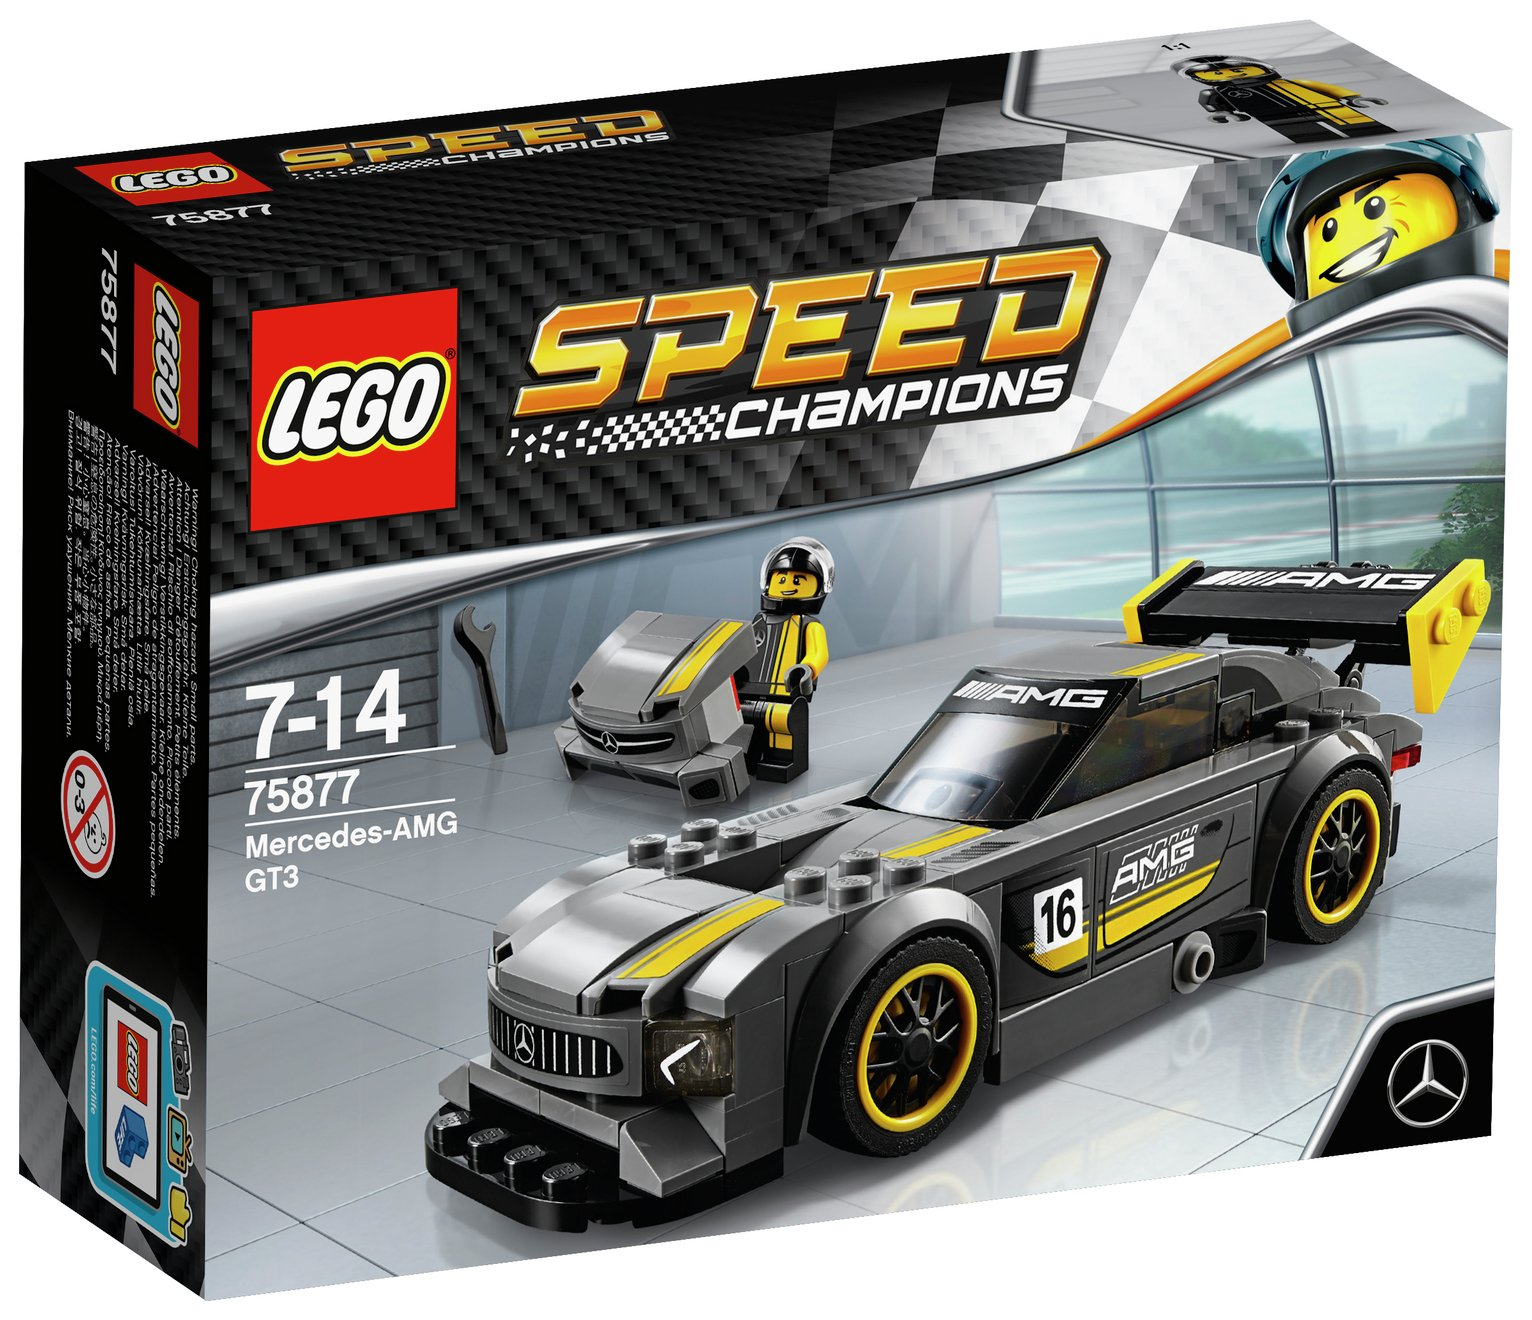 Image of LEGO Mercedes AMG GT3 - 75877.